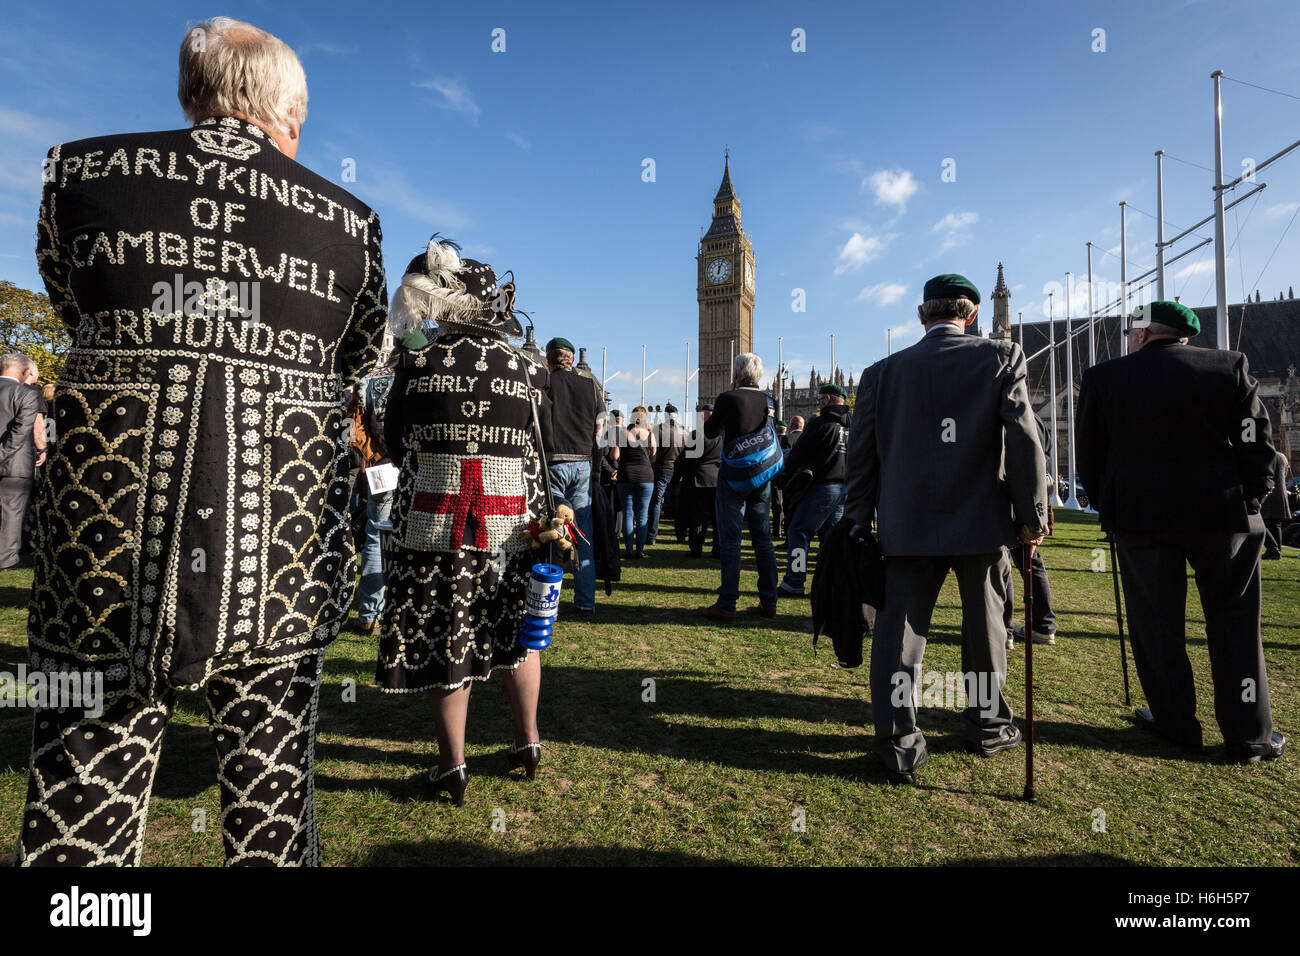 Justice for Marine 'A' solidarity protest in Parliament Square, London, UK for Royal Marine Commando Sgt - Stock Image